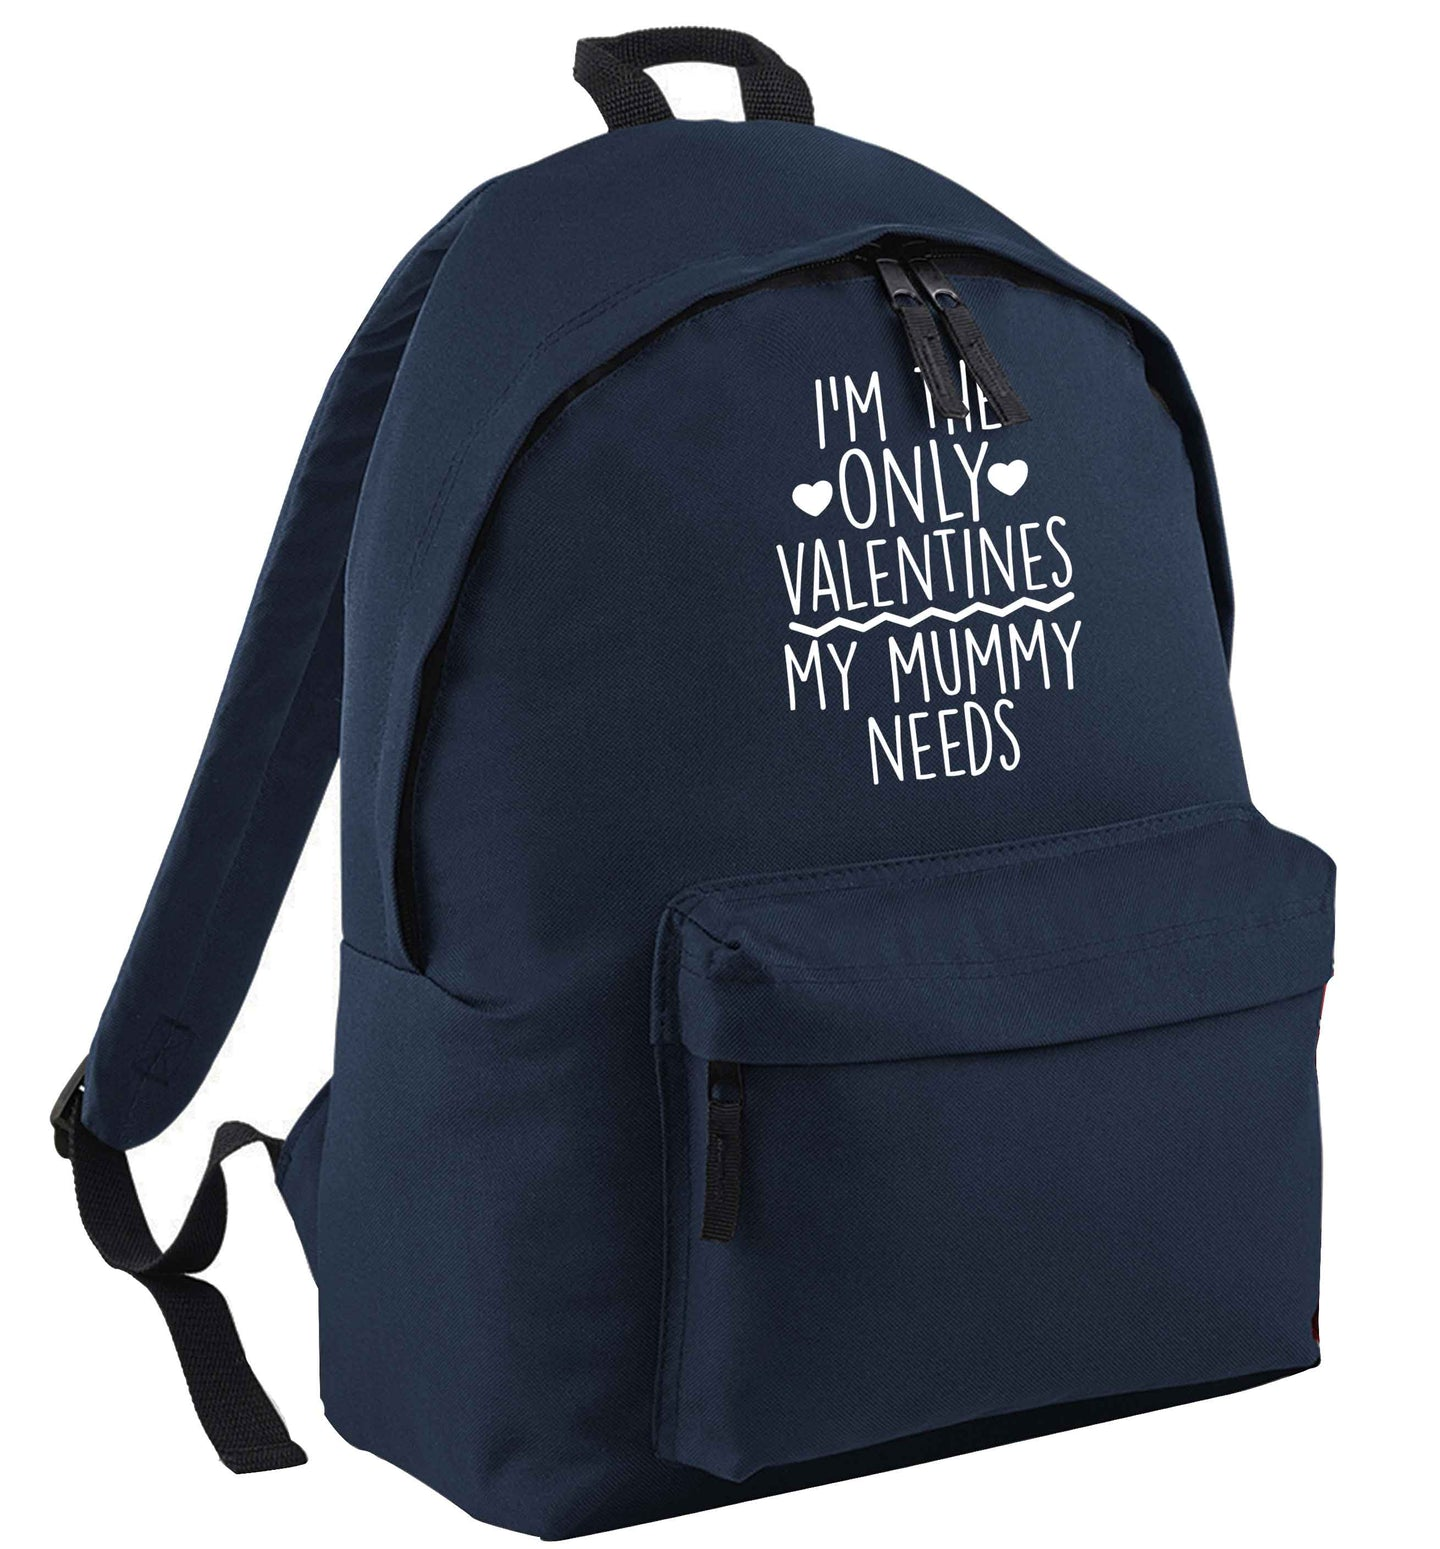 I'm the only valentines my mummy needs navy childrens backpack